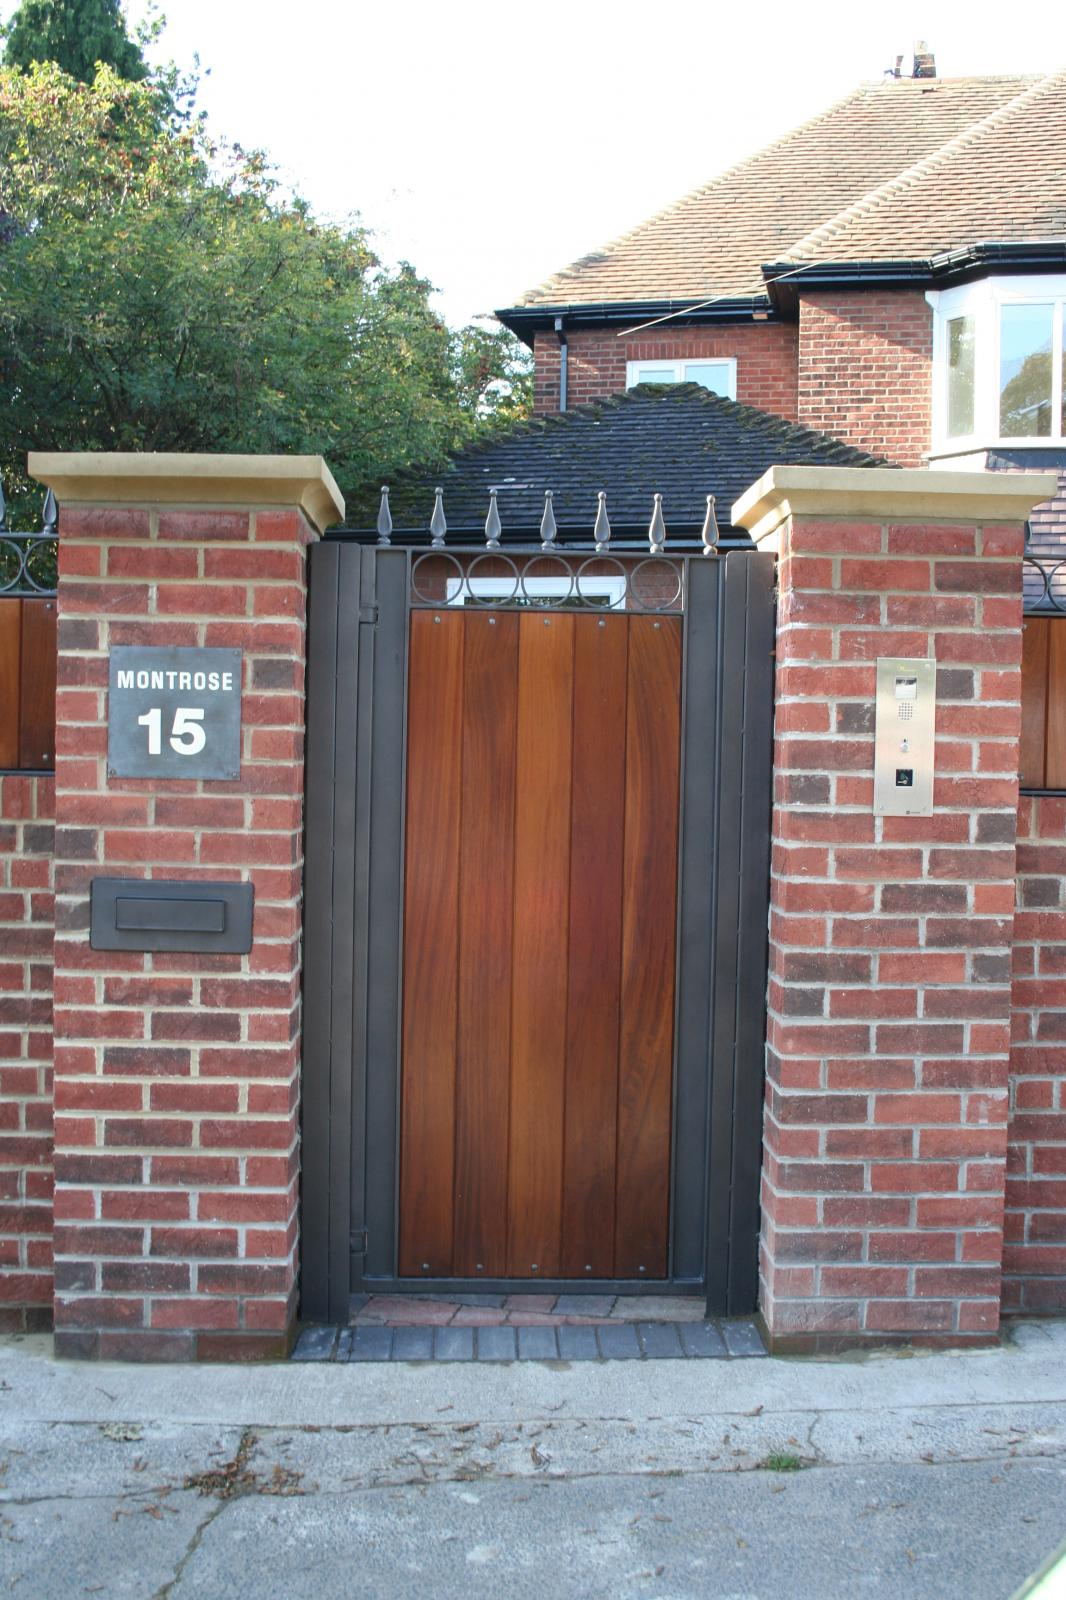 What are the benefits of sliding gates for a driveway?